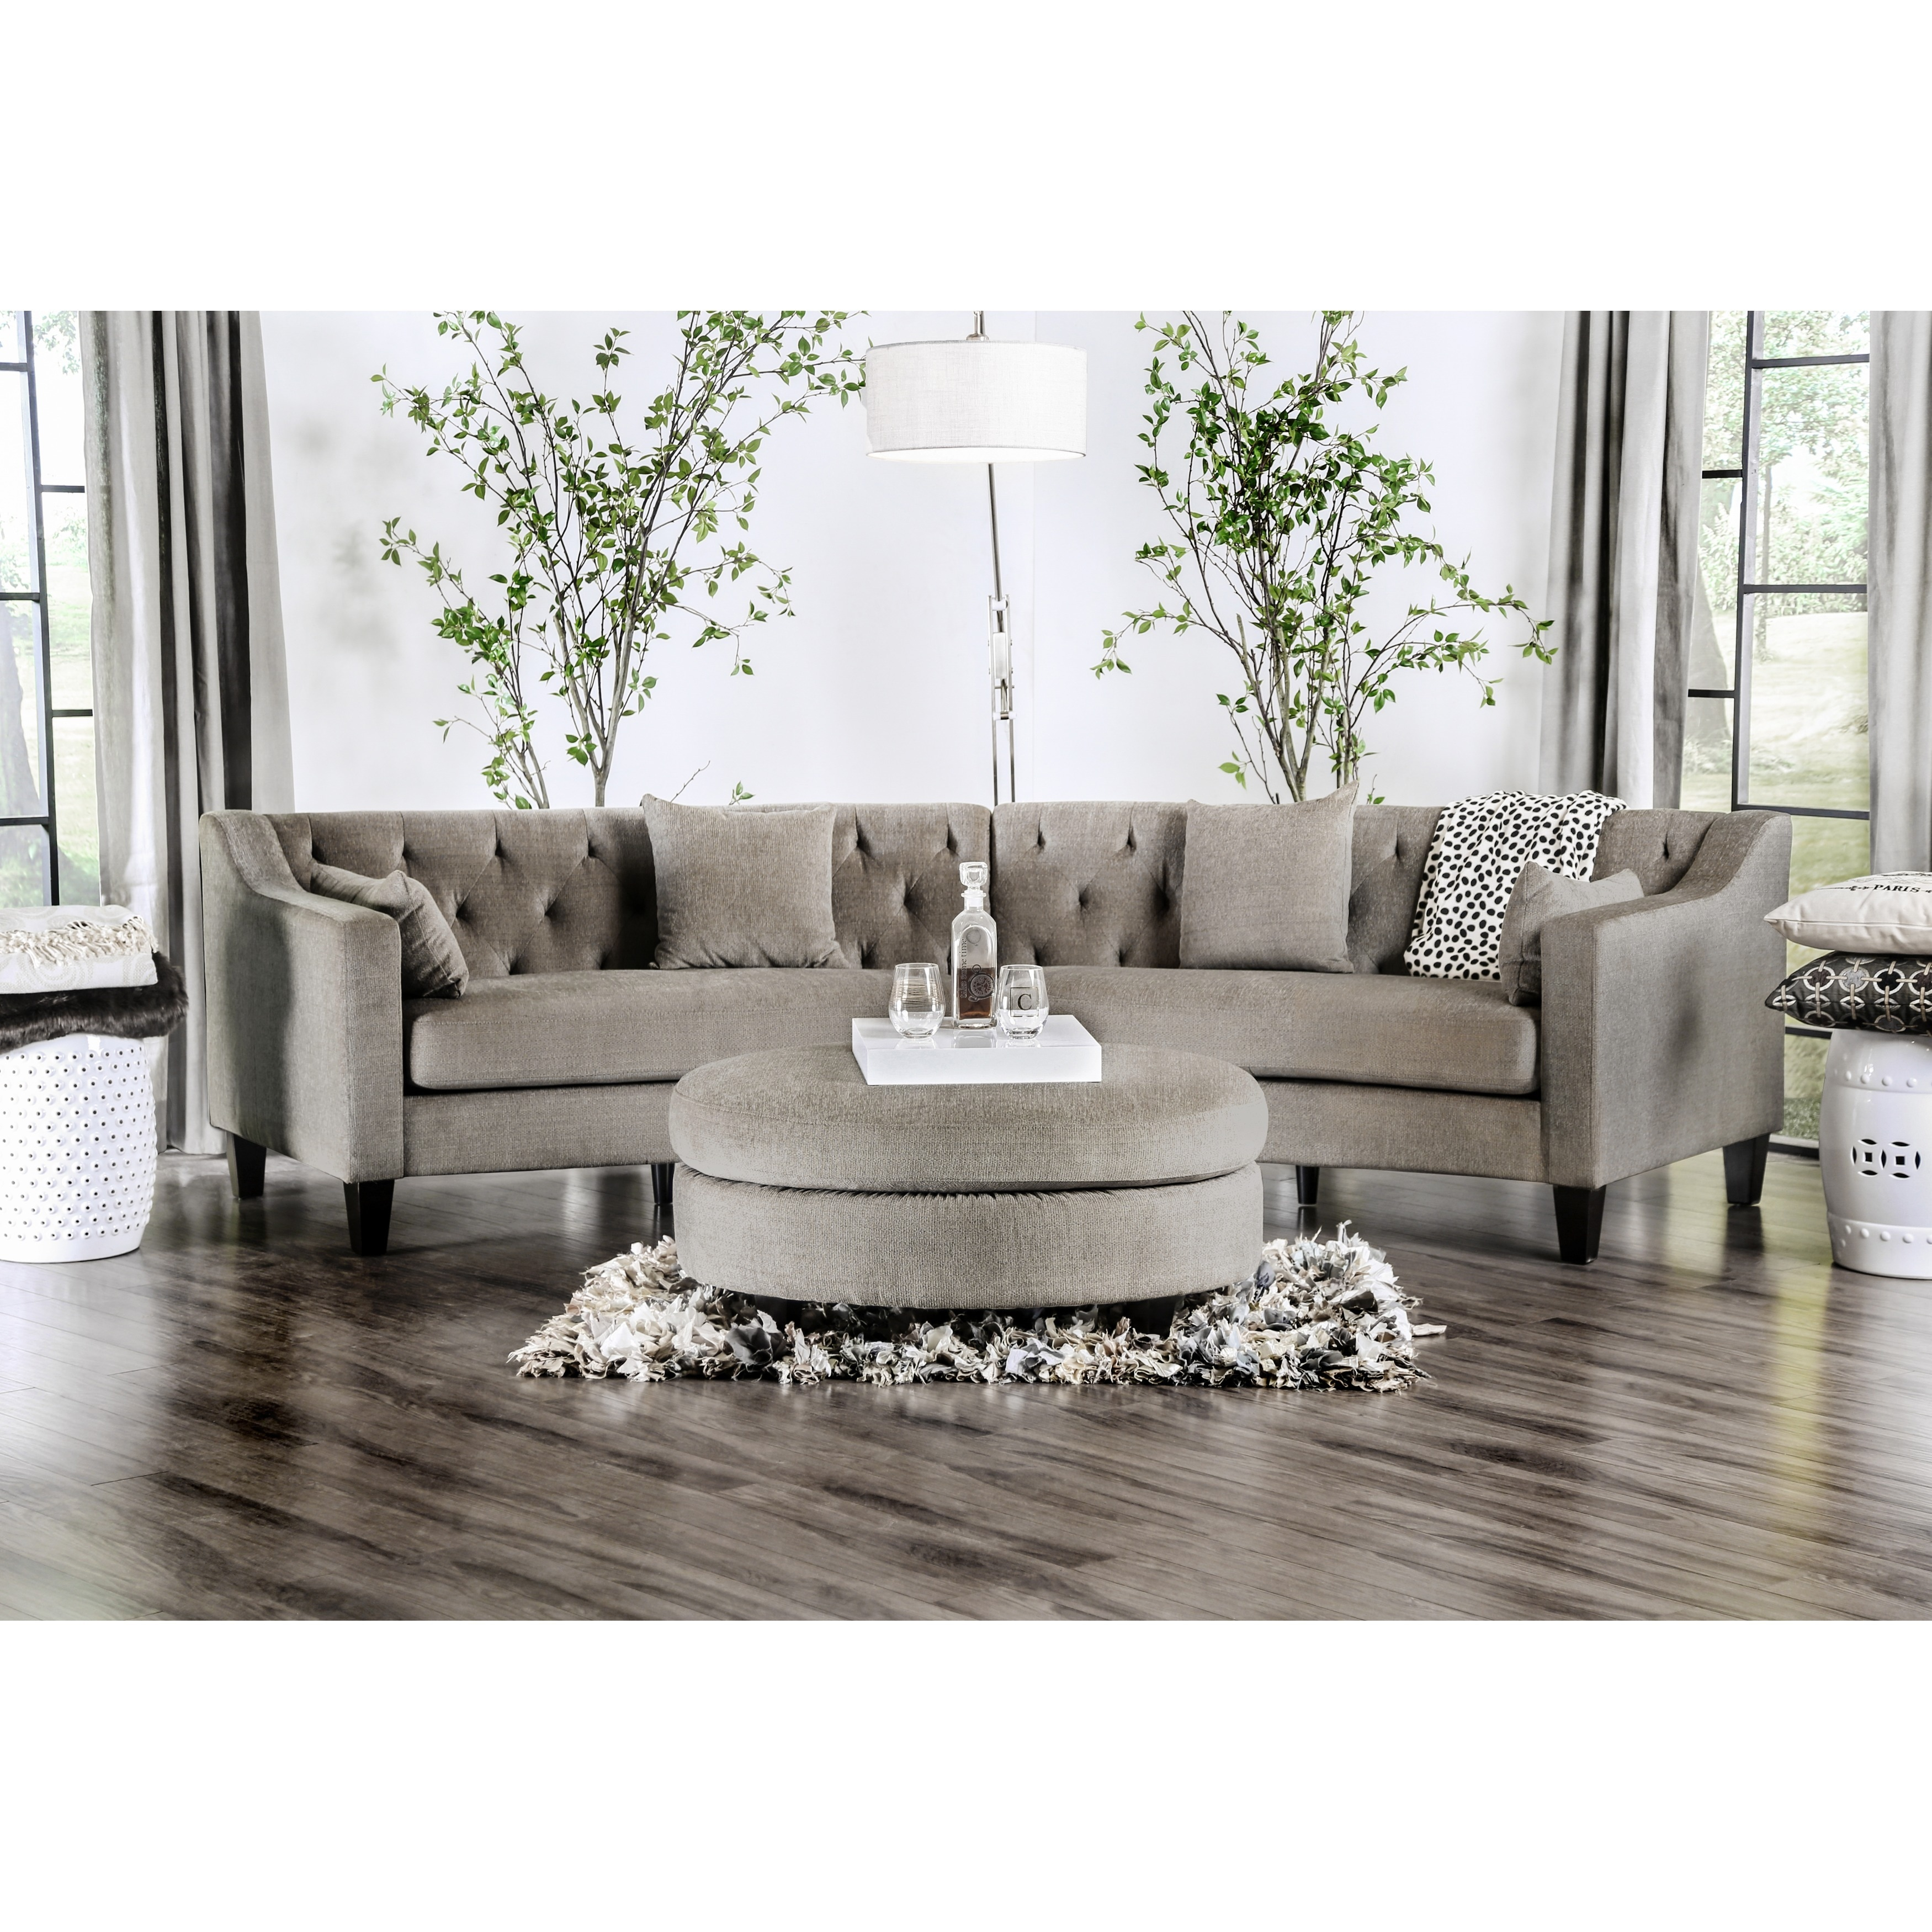 Beau Aretha Contemporary Grey Tufted Rounded Sectional Sofa By Furniture Of  America